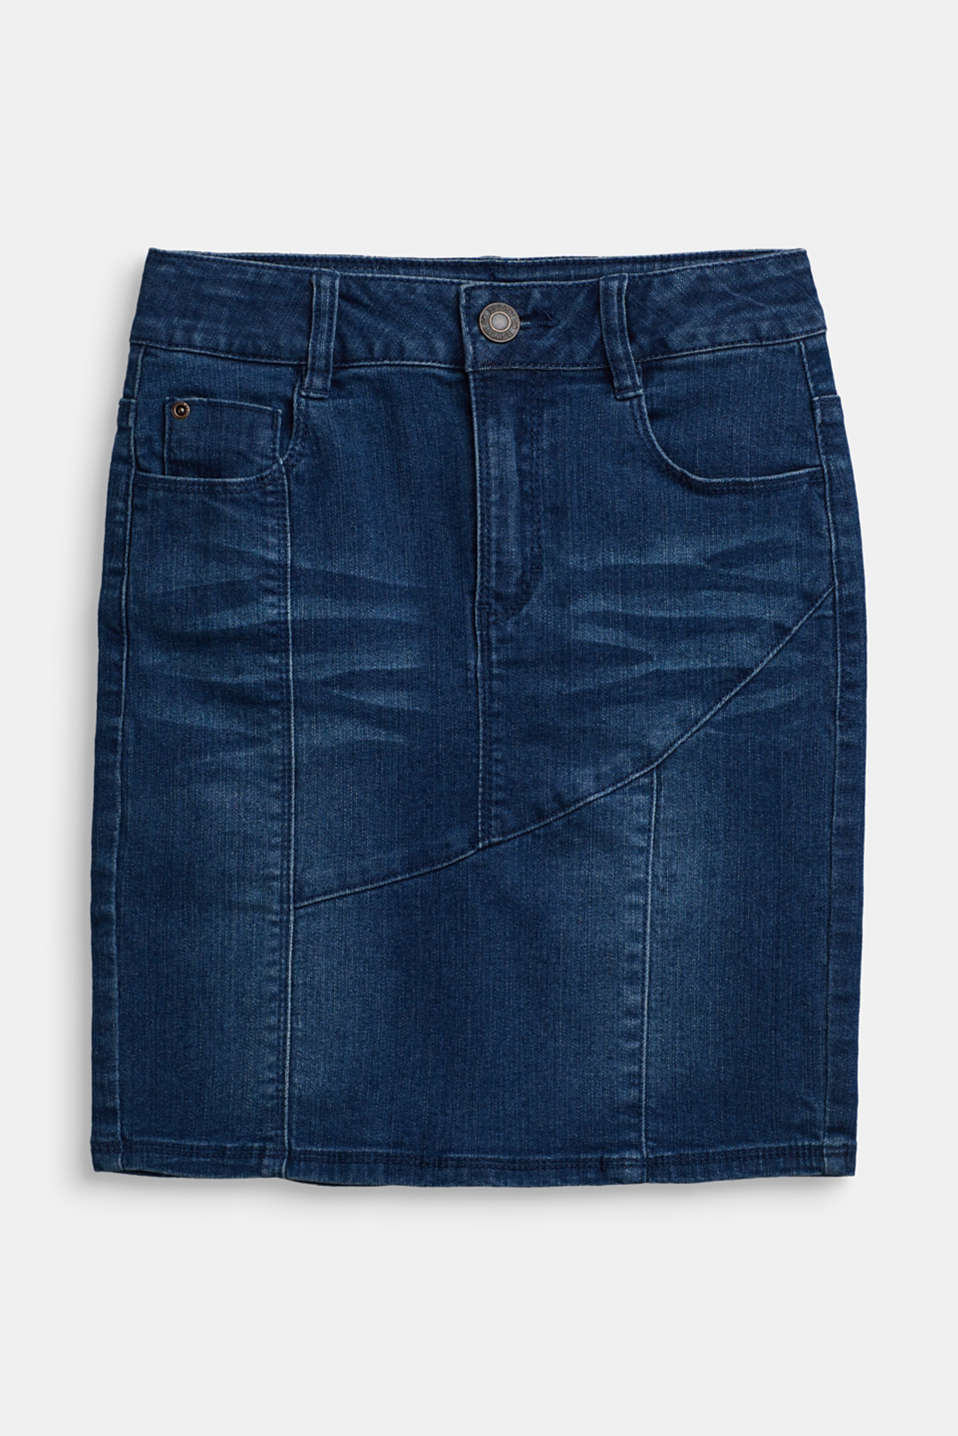 Esprit - Super stretch denim skirt